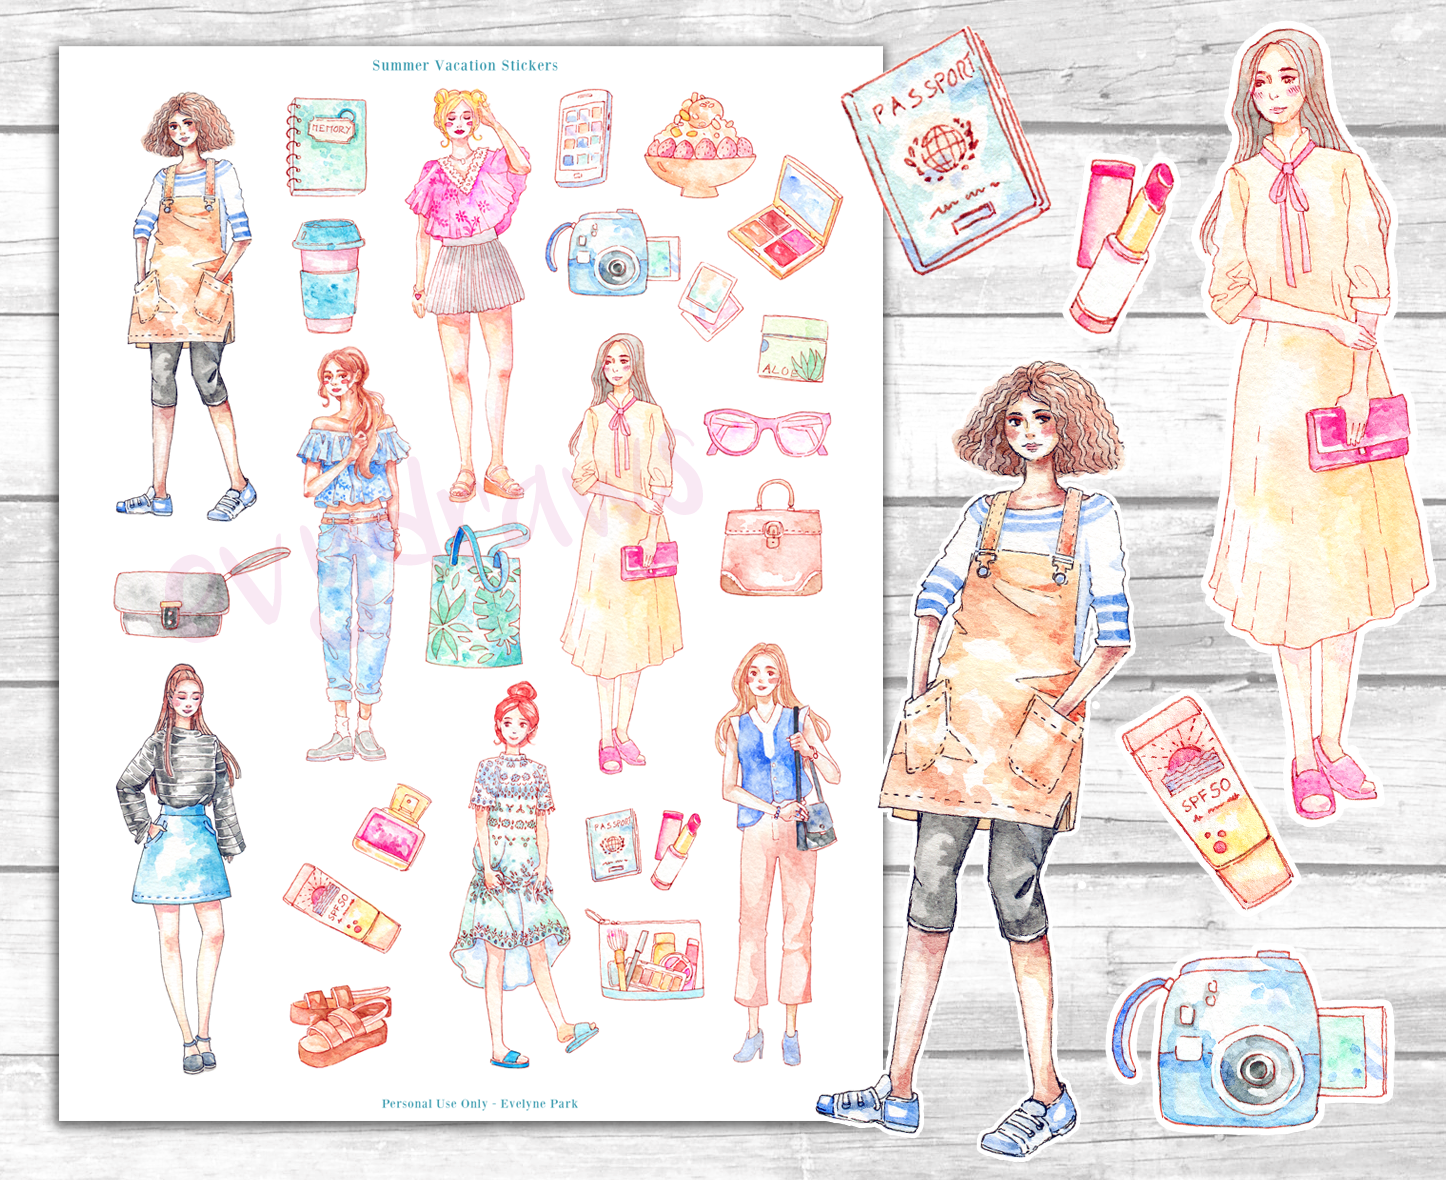 Free printable summer vacation stickers on my blog. Korean fashion, travel essentials and lots of colorful details!